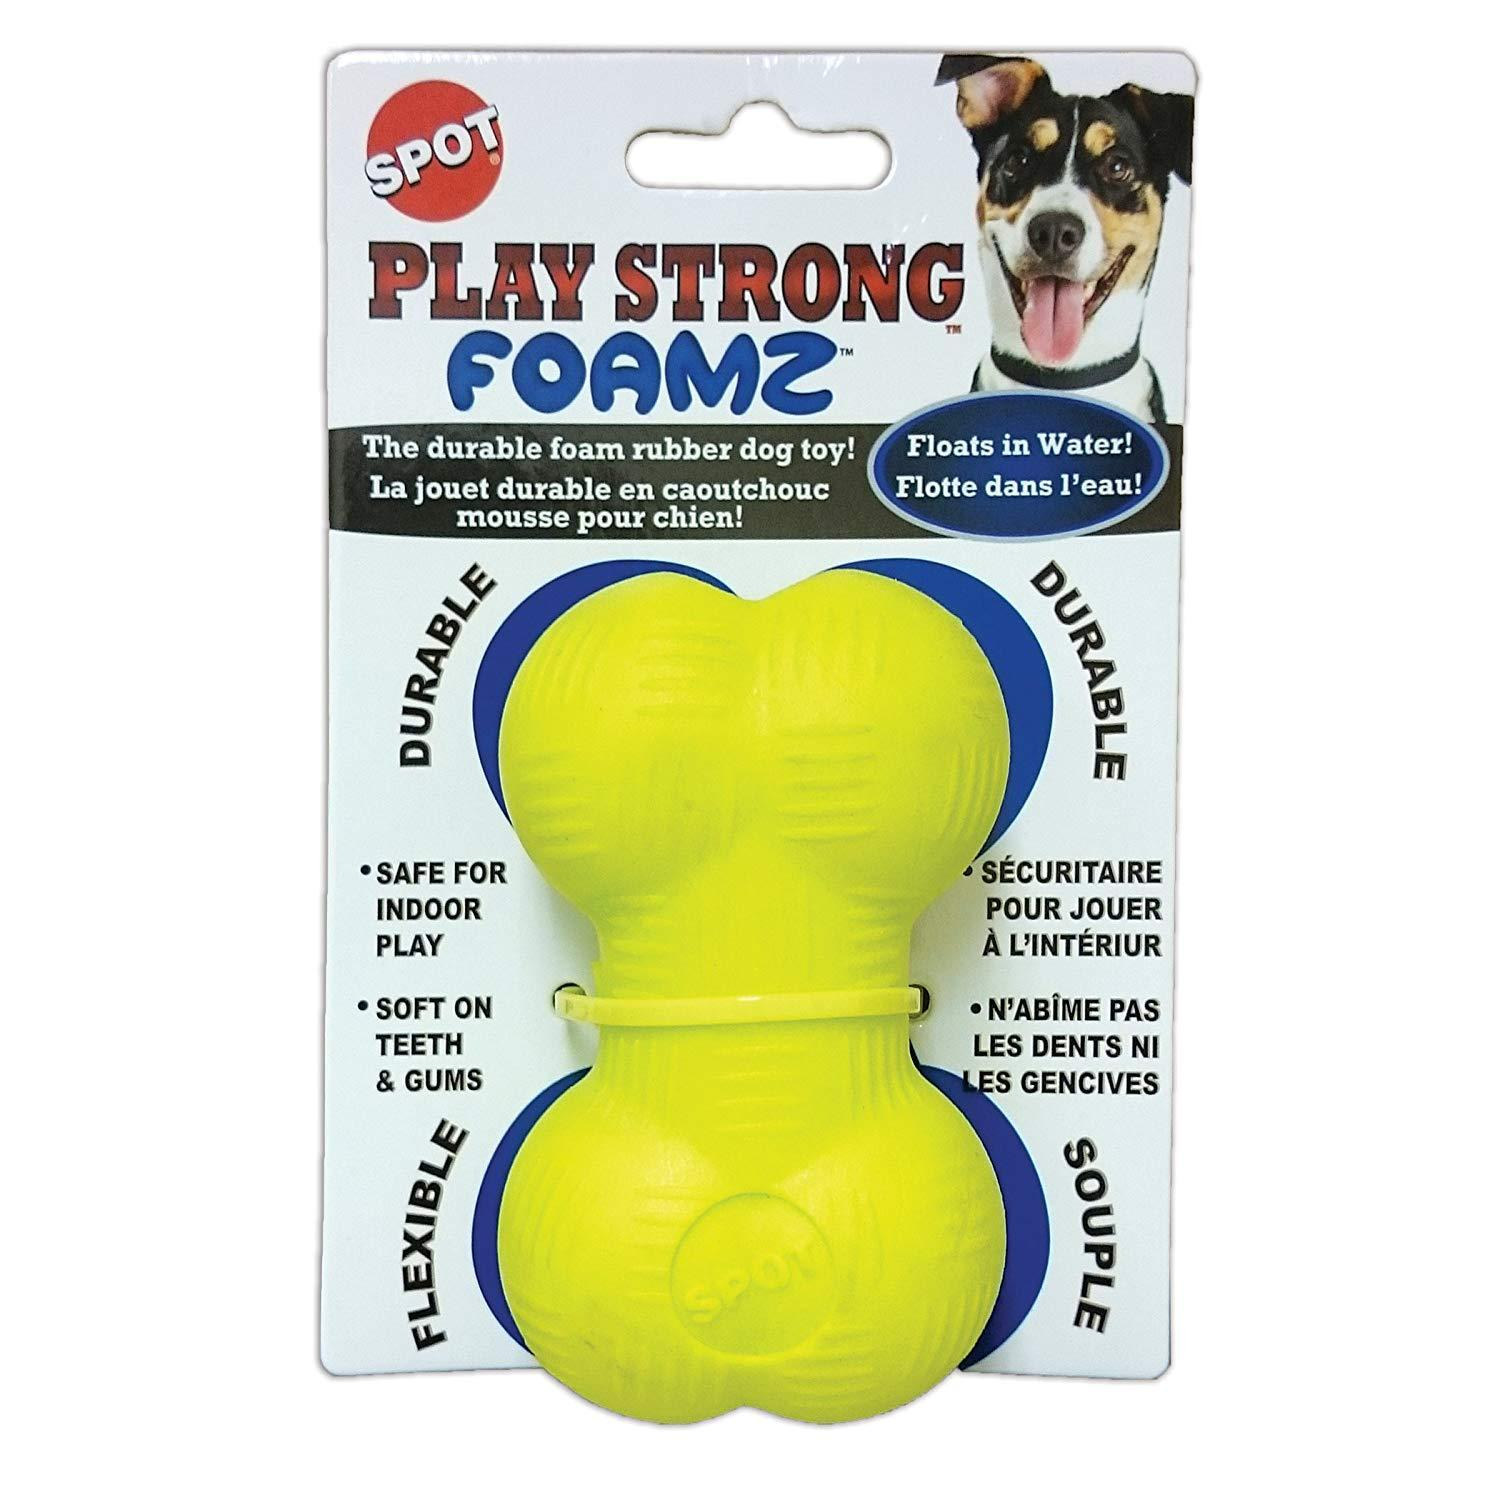 Ethical Pets Spot Play Strong Foamz Rubber Dog Toys (18mo Warranty): 2.75in Chew $2.32 or 3.5in Bone $1.74  FS w/ Prime